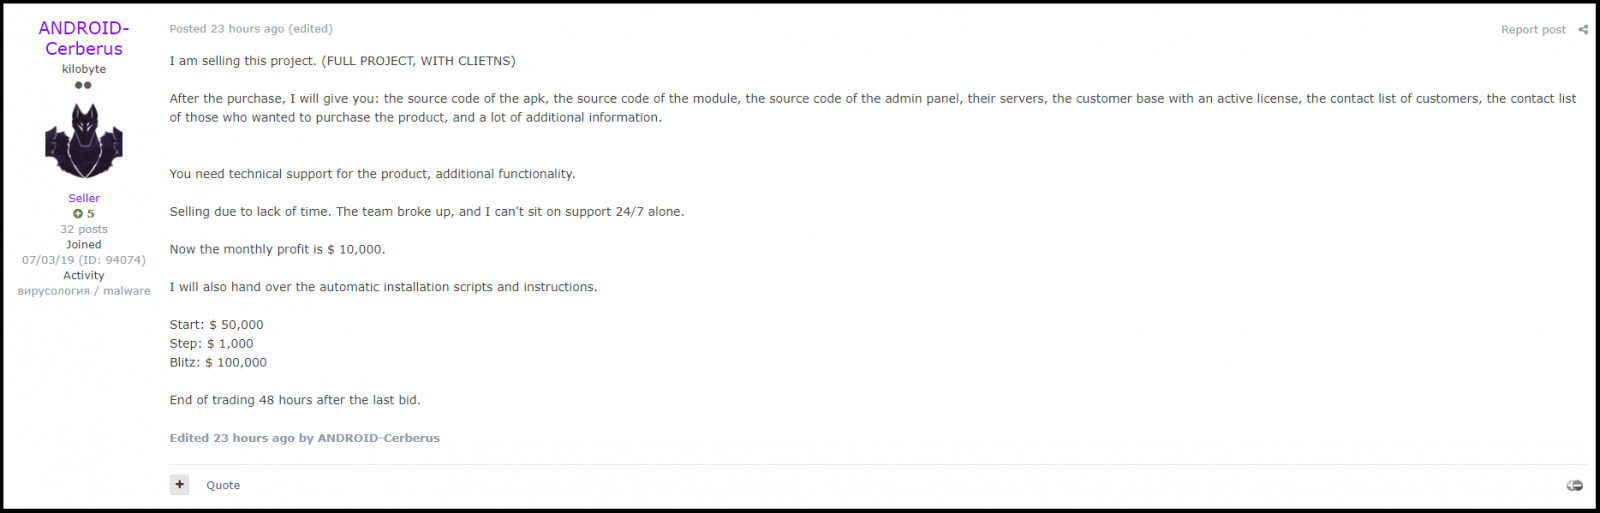 Source code of Cerberus banking Trojan leaked on underground forums